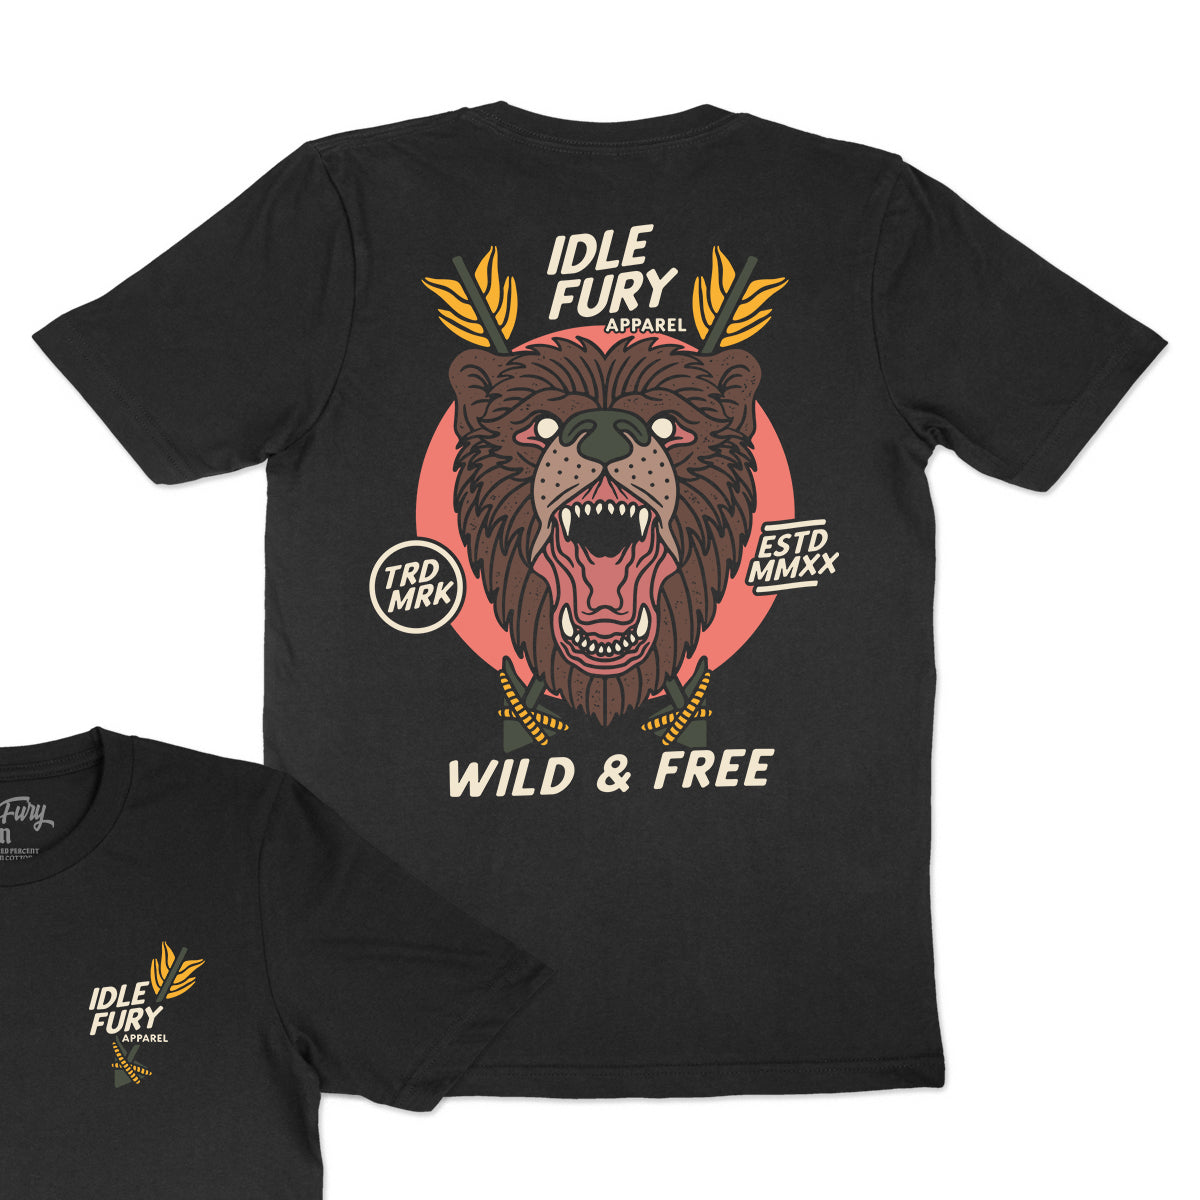 Wild & Free - Black T-Shirt - Front & Back Print